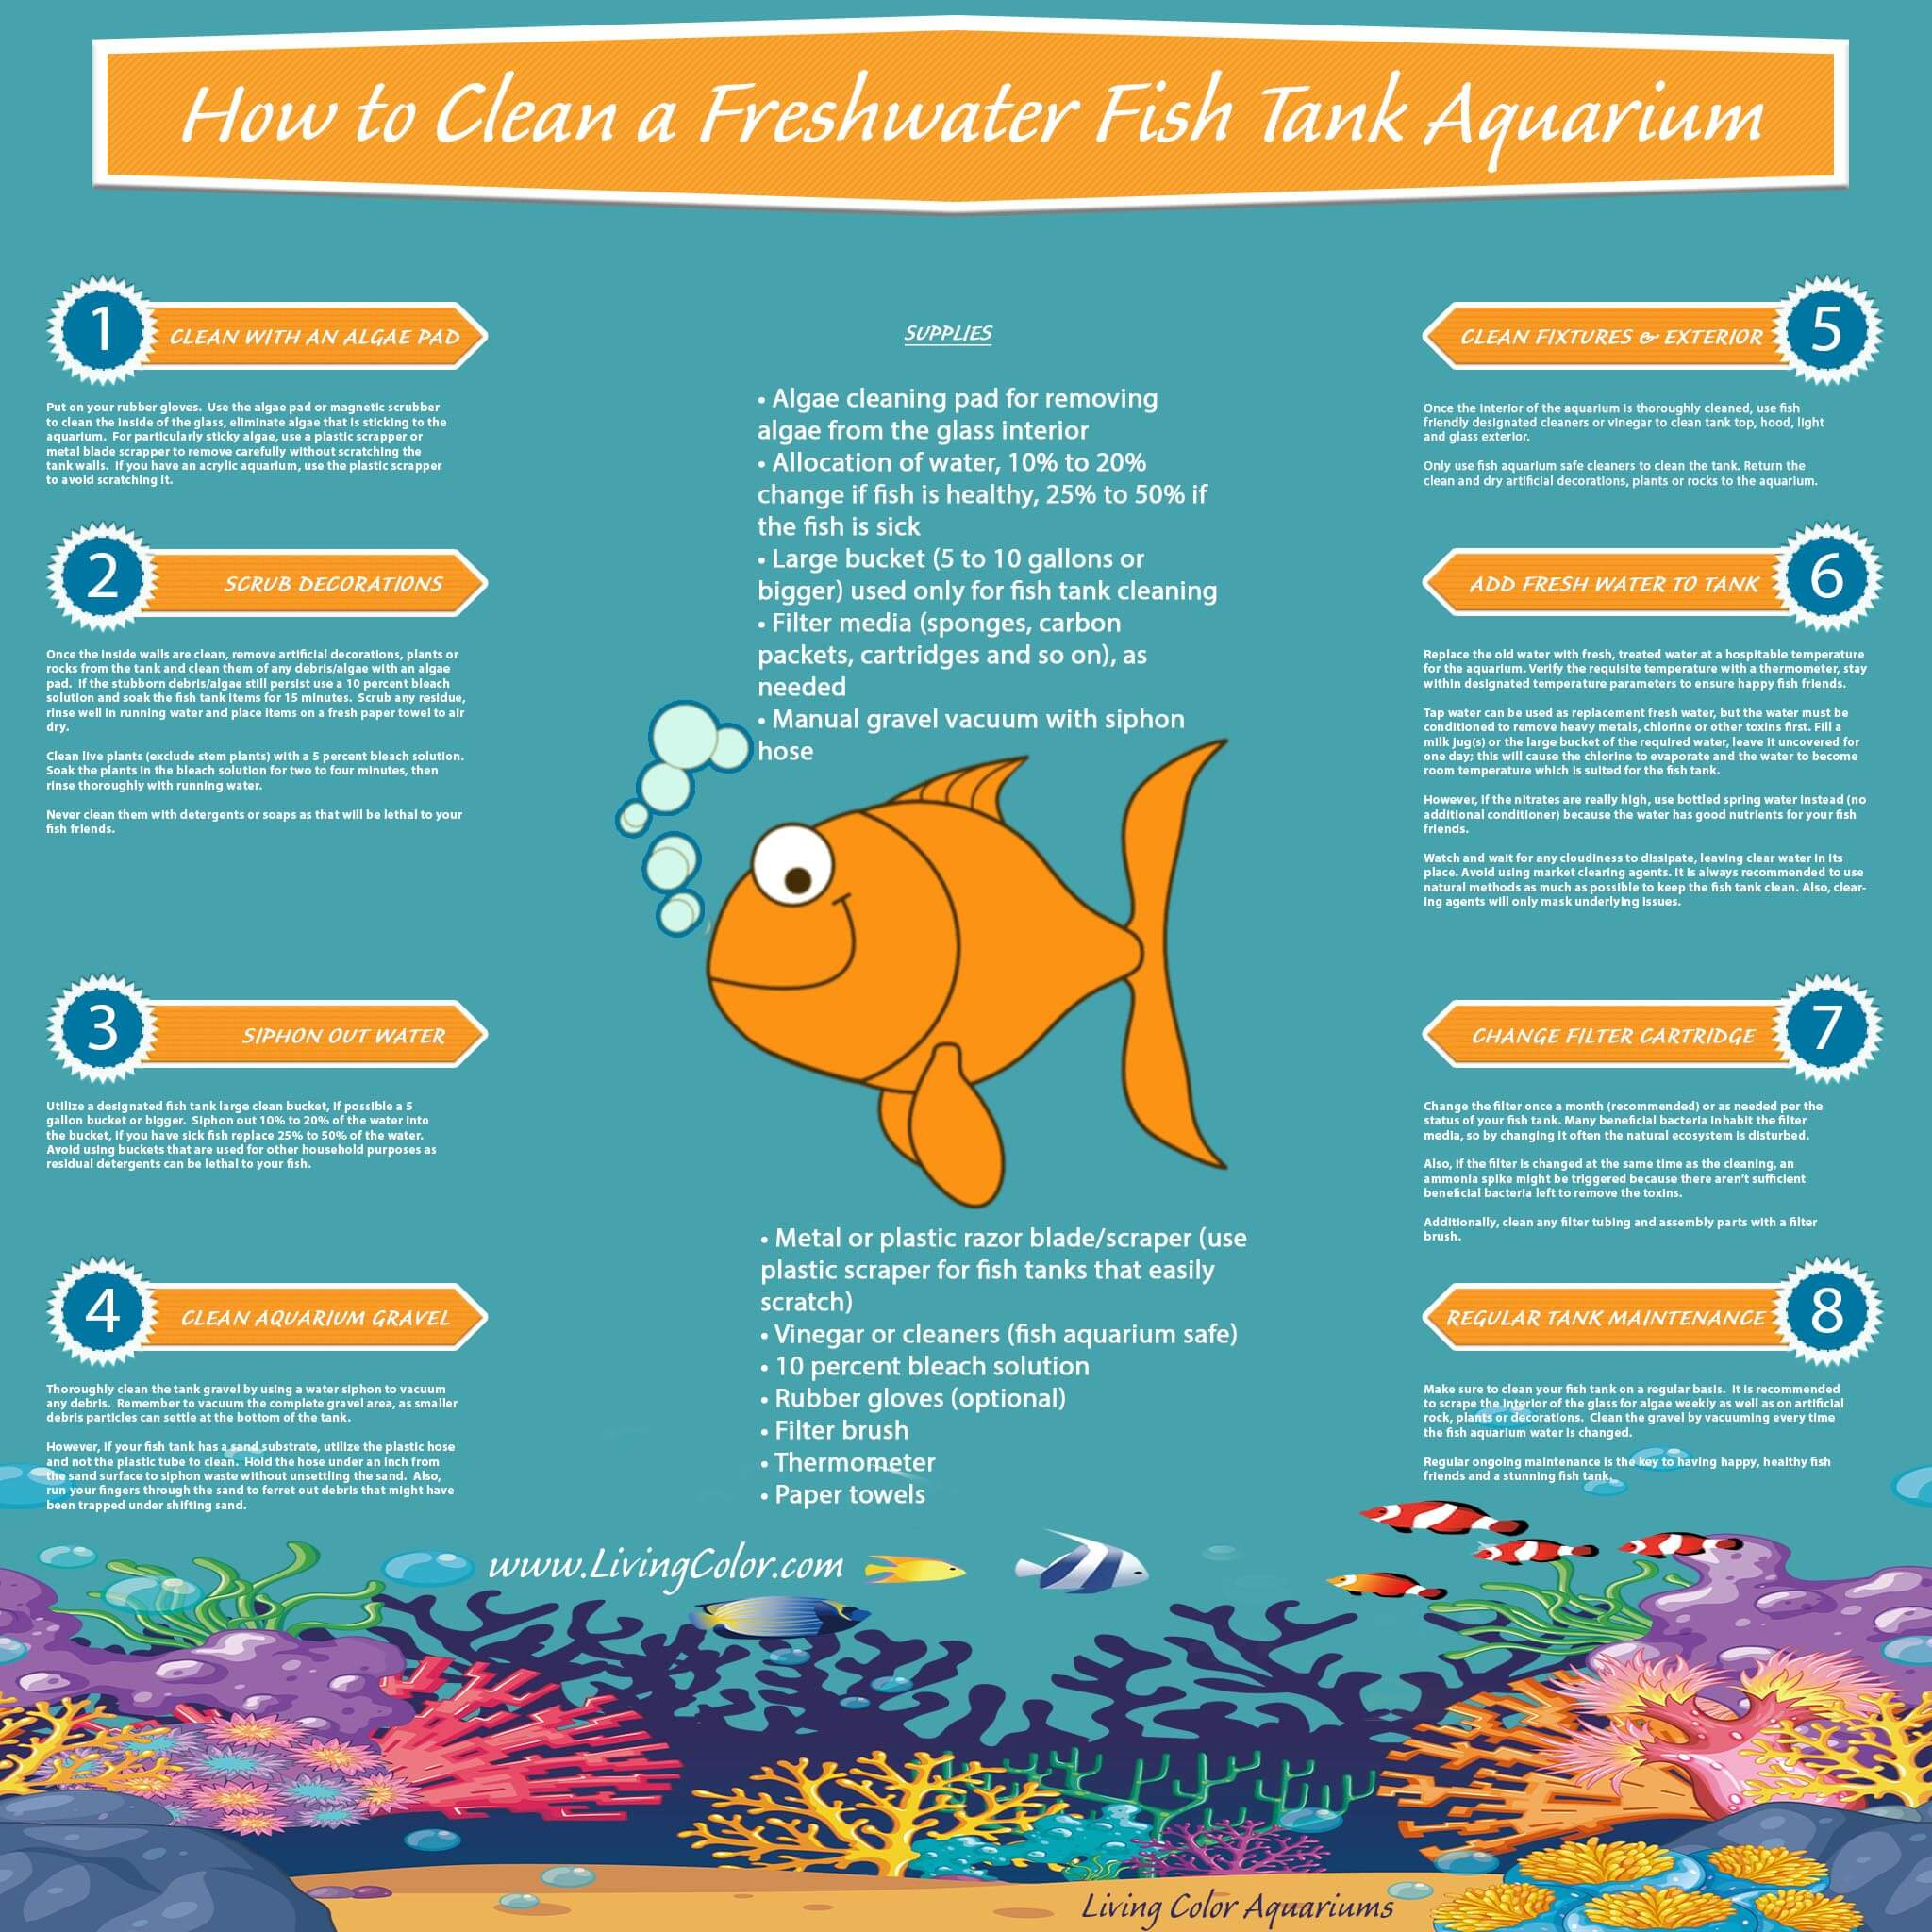 how to clean a freshwater fish tank aquarium infographic living